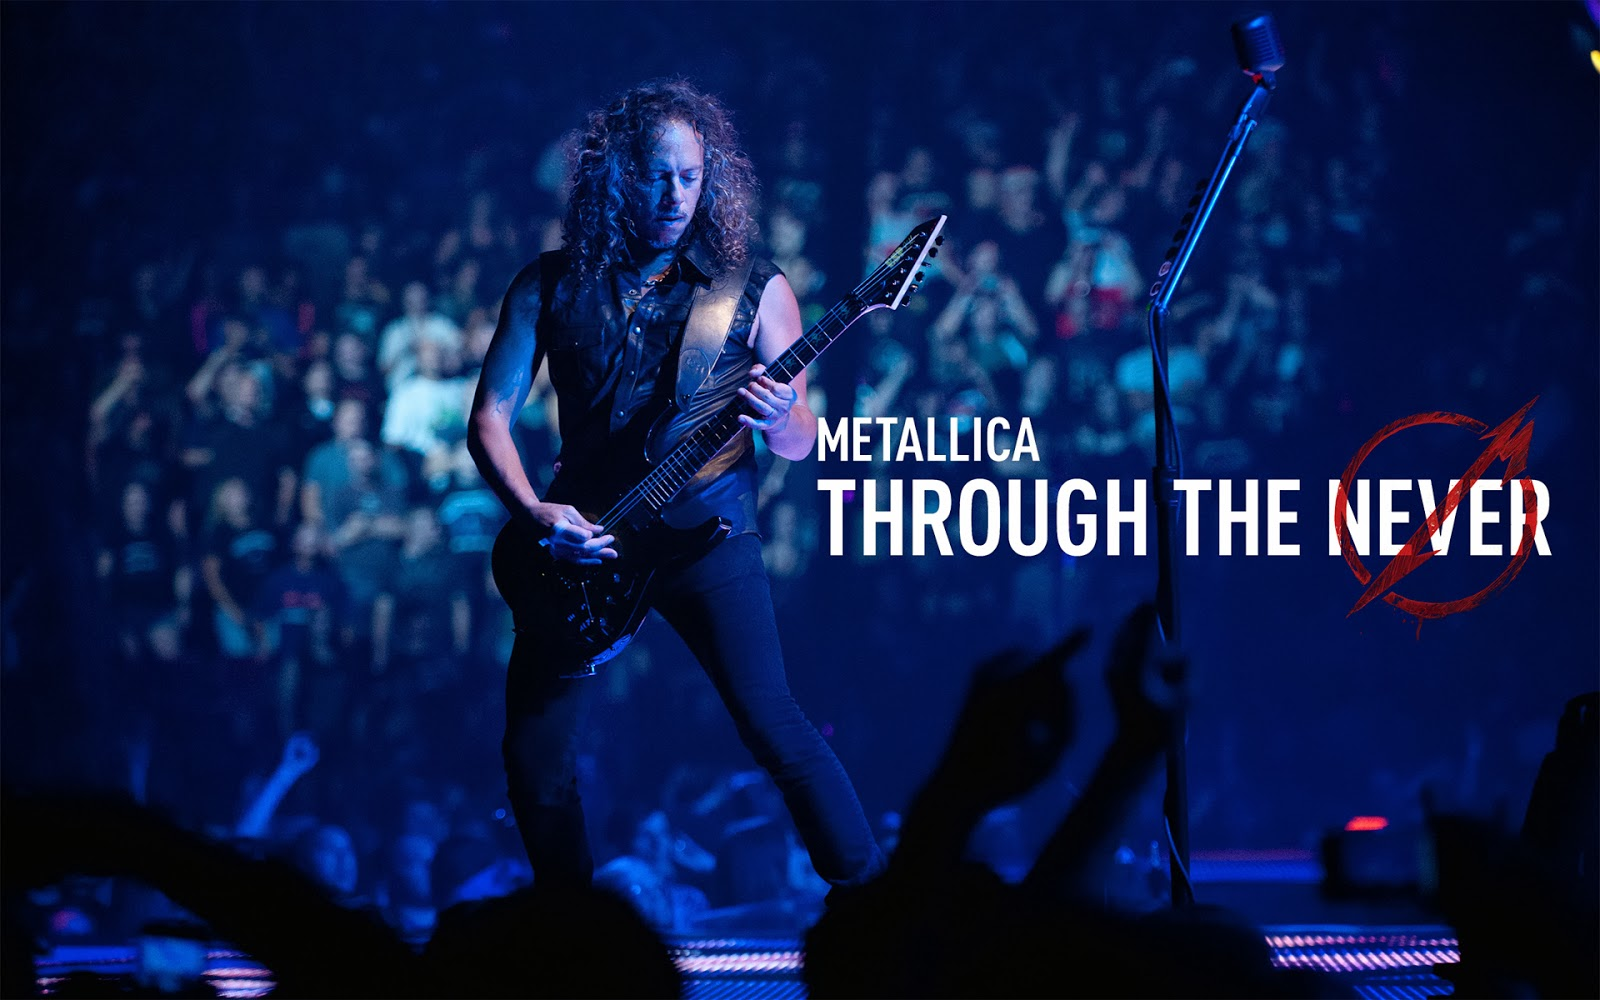 [Review] 메탈리카 신보 [Metallica Through..